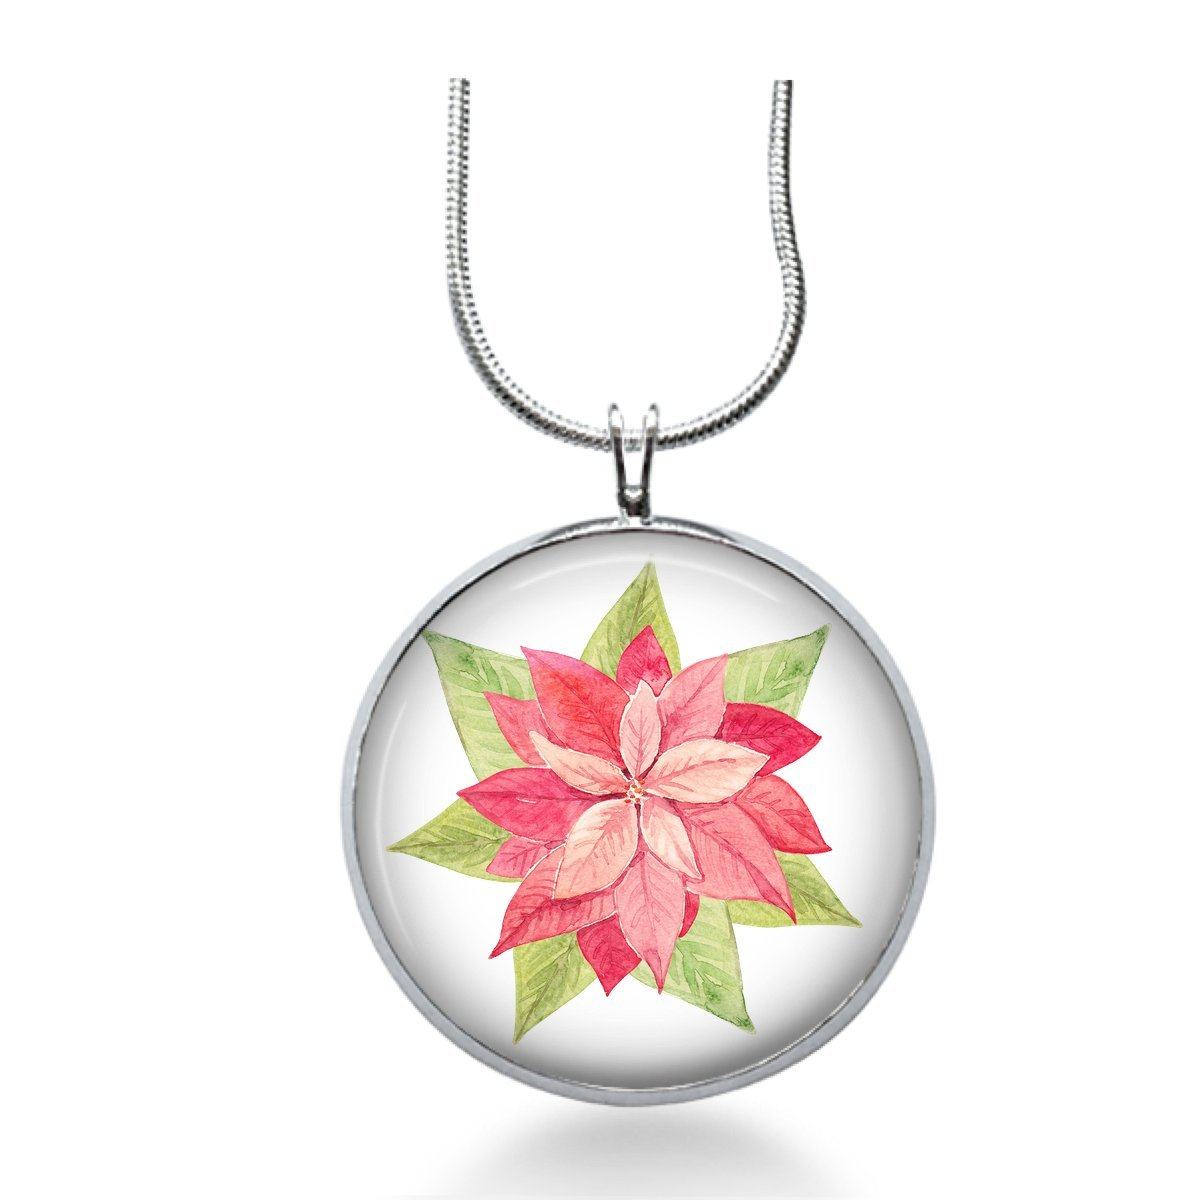 Christmas Poinsettia necklace - Holiday Jewelry, by Funjewelryshop (Image #1)